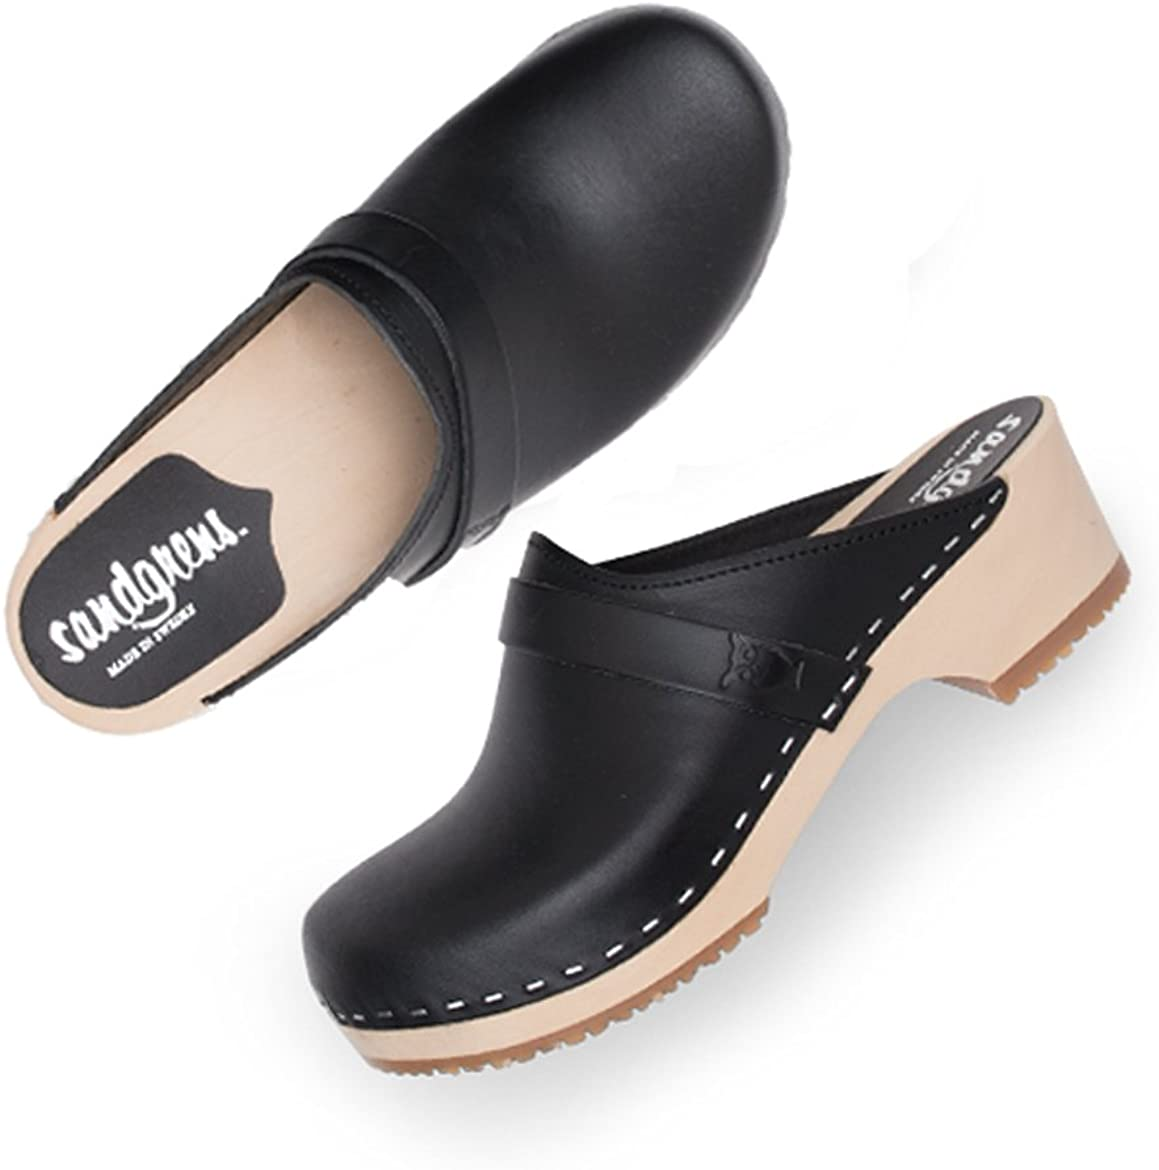 Buts Wood Soles Swedish Clogs Heels Gray Clogs Stylish Women Clogs High Heel Clogs Wooden Clogs Leather Clogs